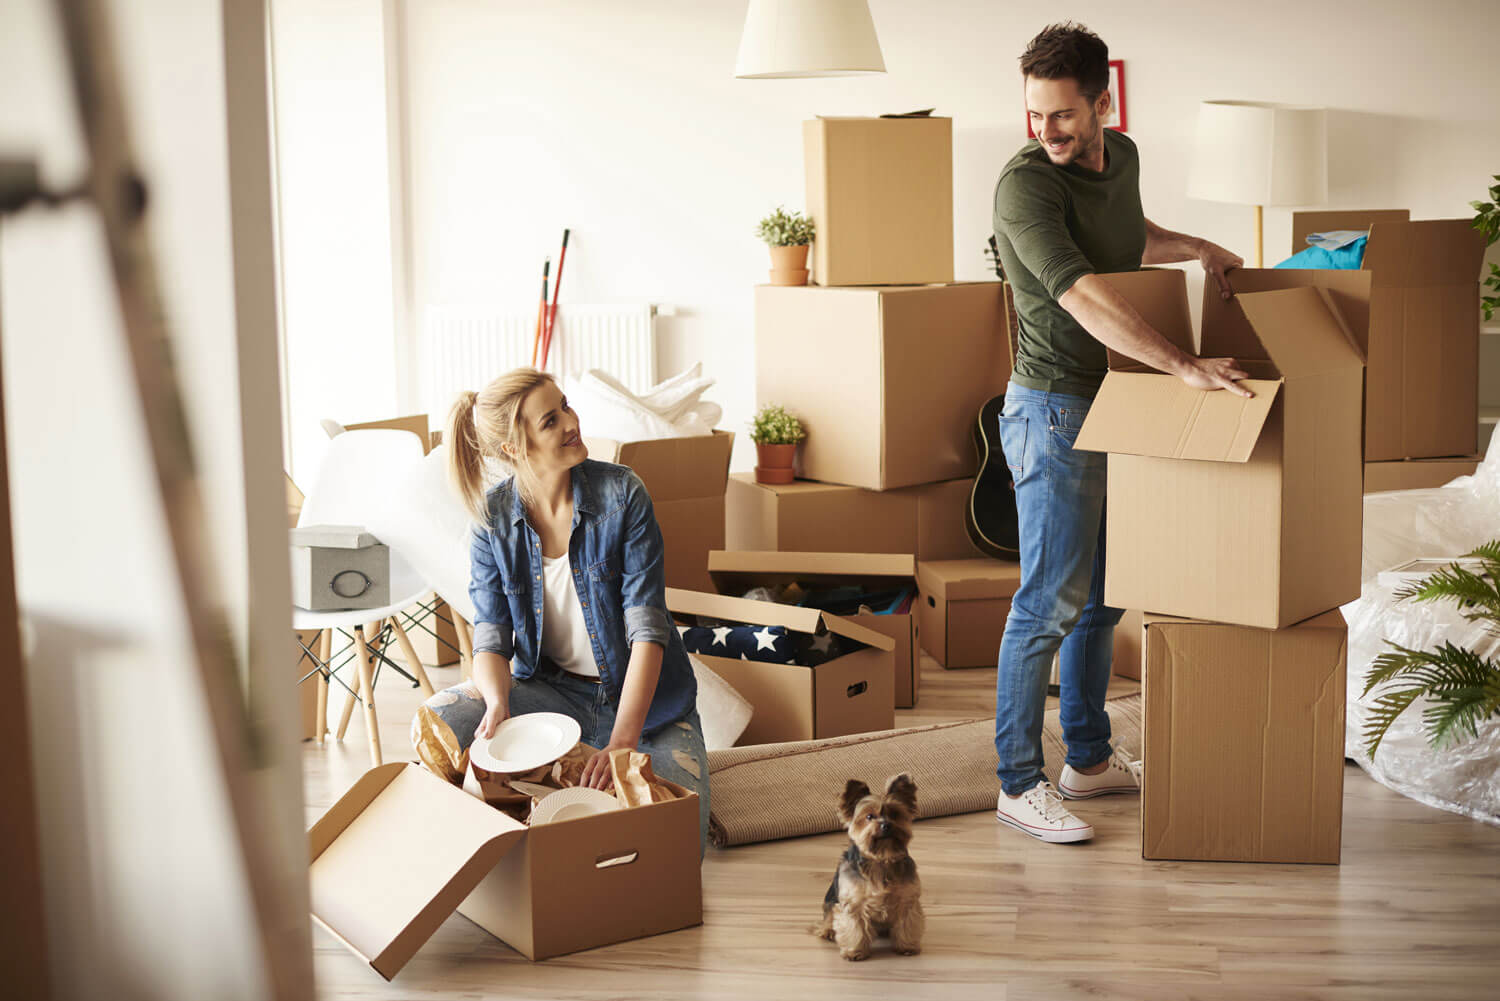 A couple moving into an apartment with their dog, unpacking their stuff from cardboard boxes